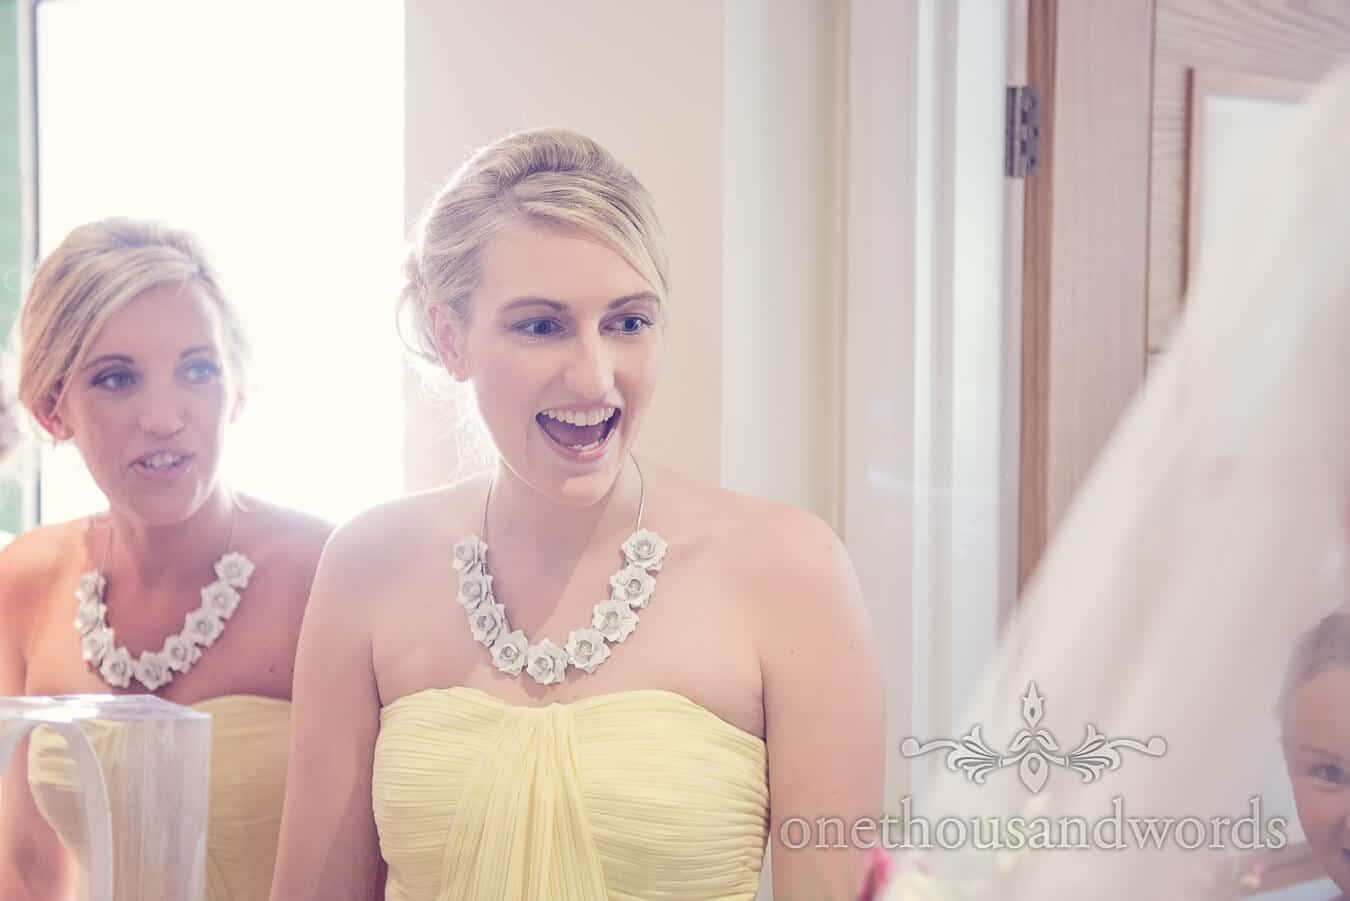 Bridesmaids reaction to seeign bride in weddign dress